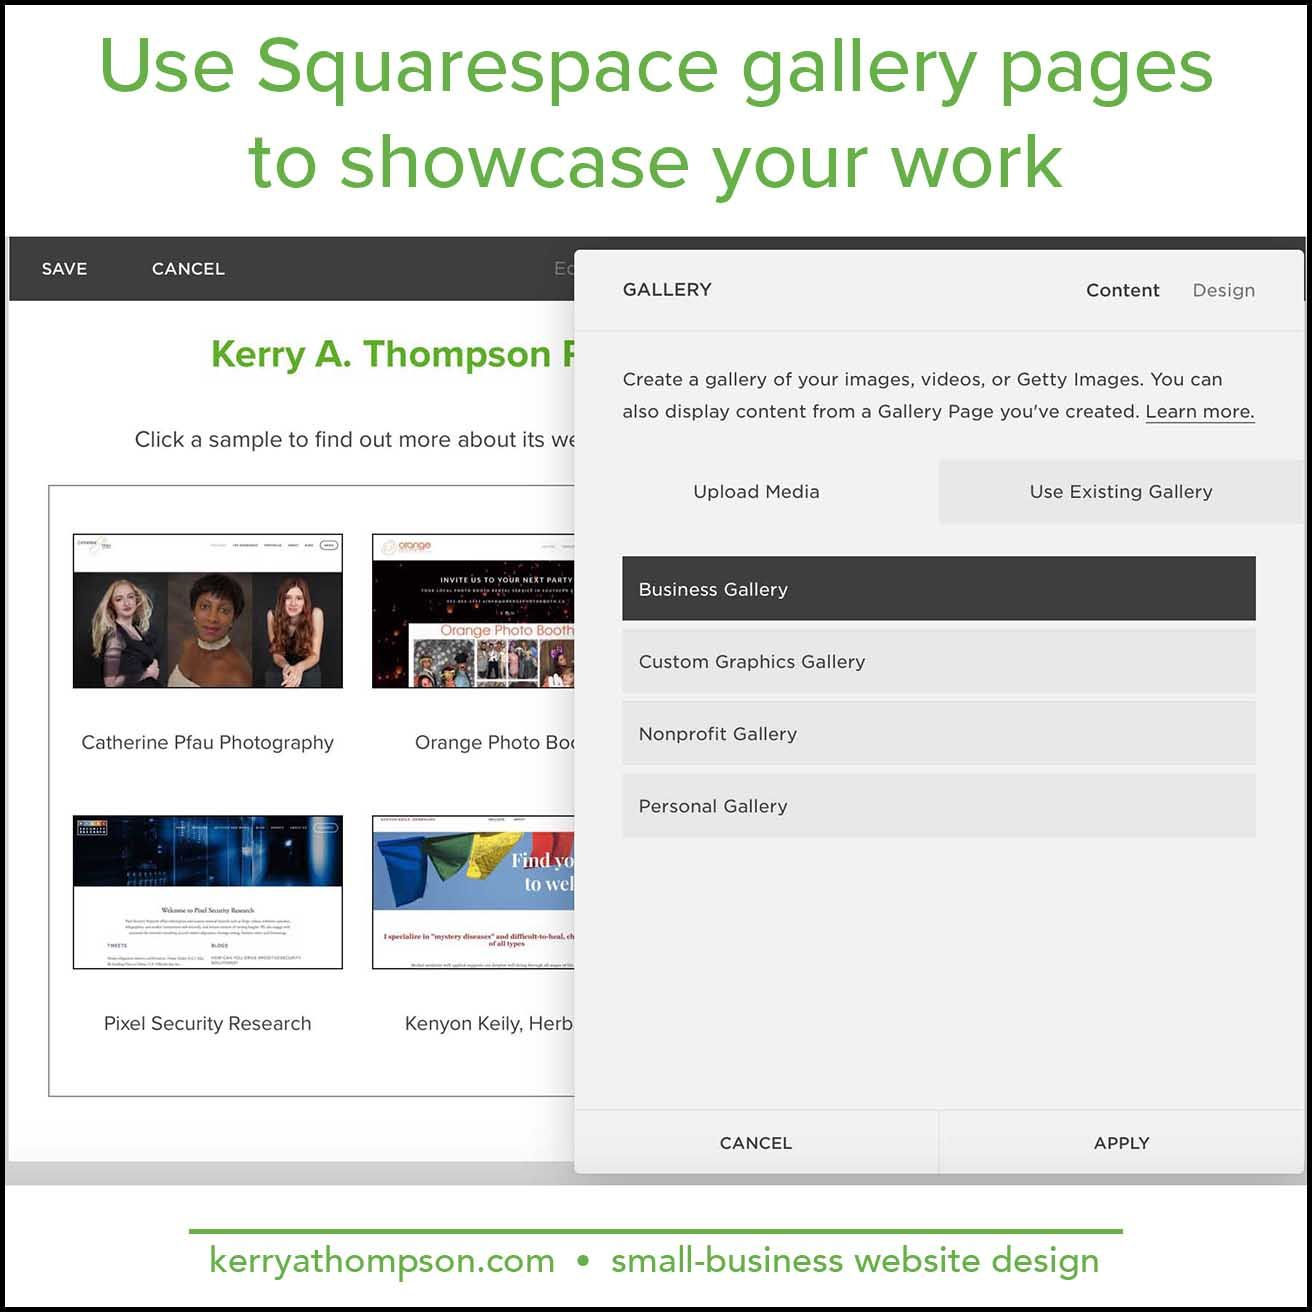 Squarespace gallery pages come to the rescue of a crowded